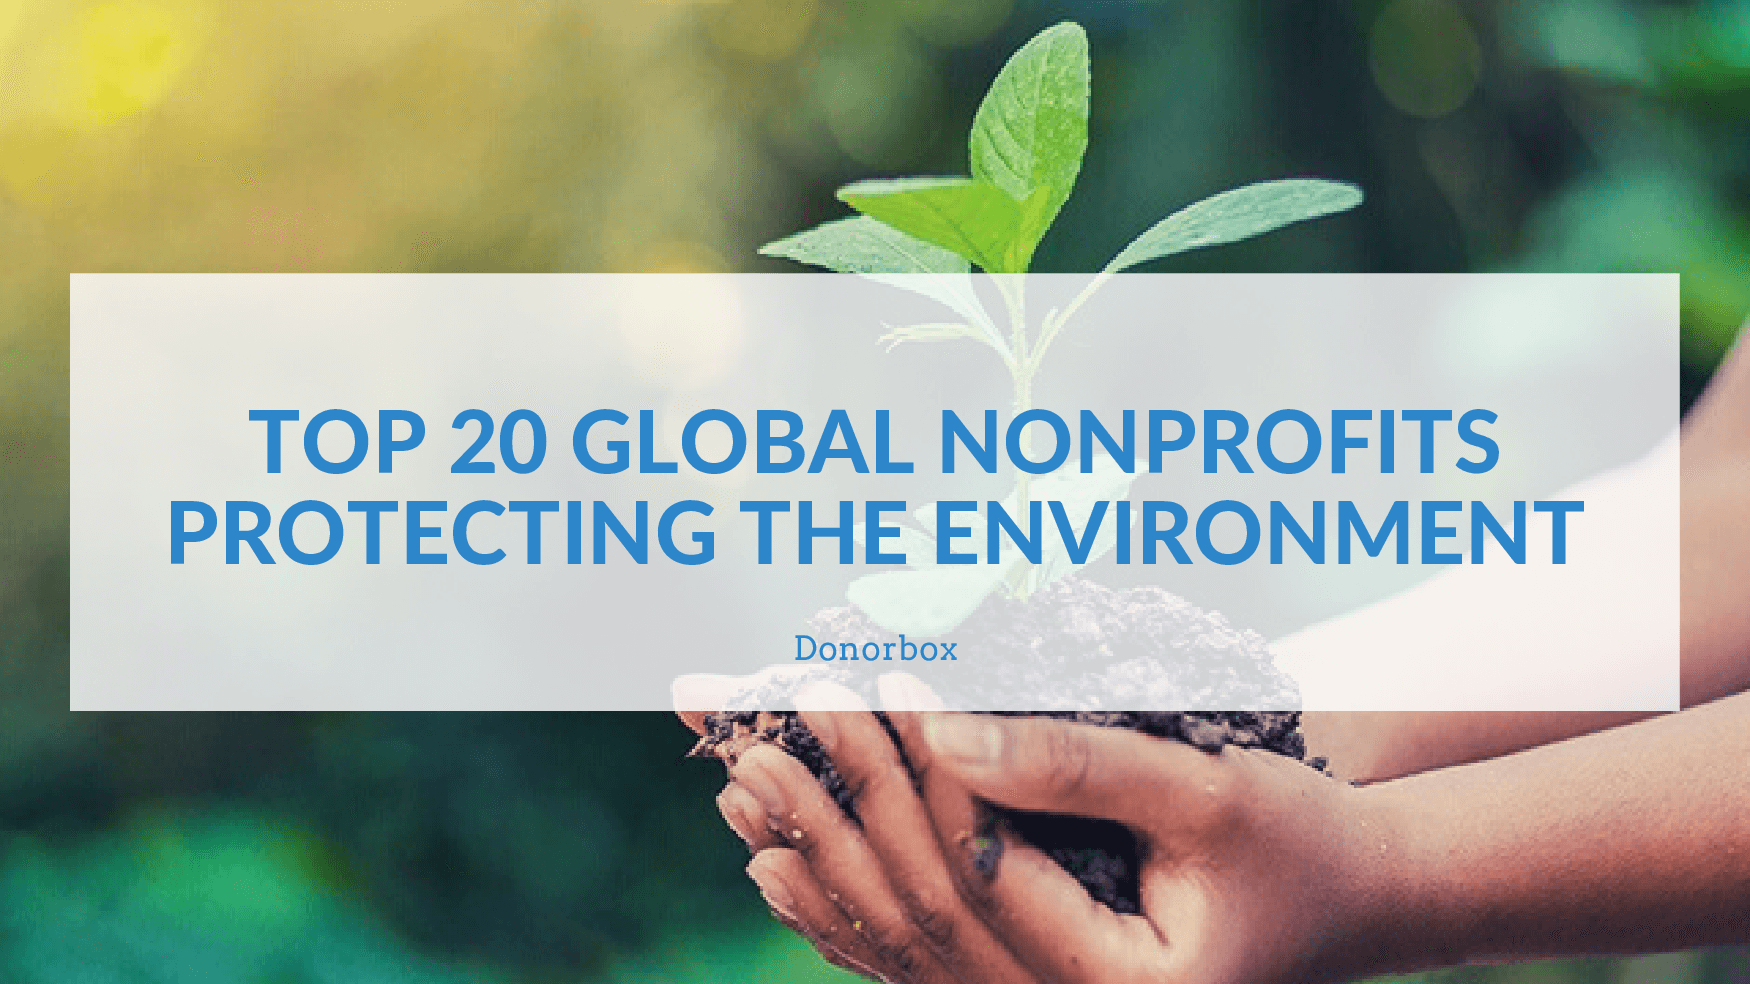 Top 20 Global Nonprofits Protecting the Environment